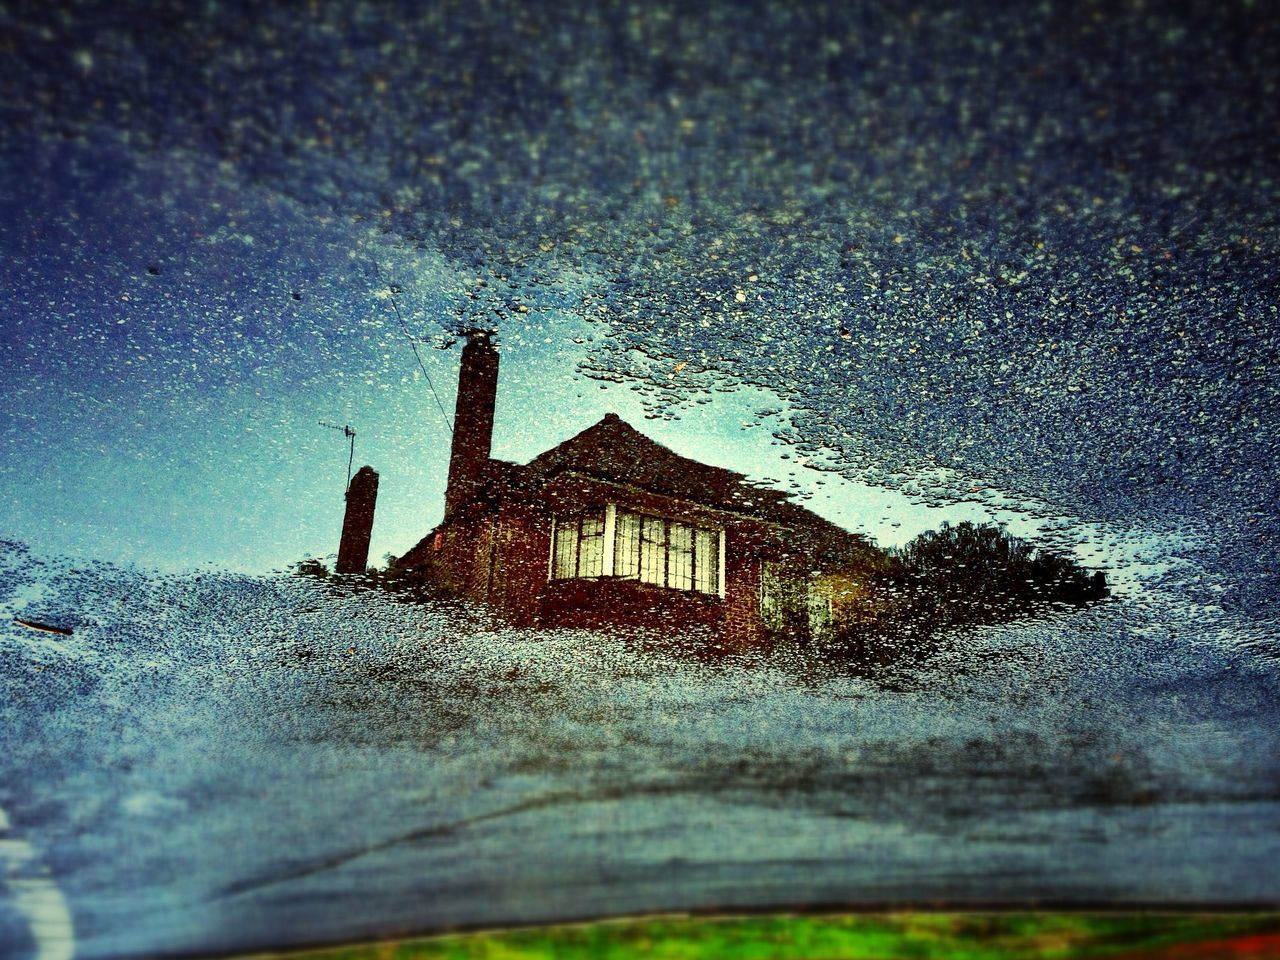 Reflection of built structure in puddle